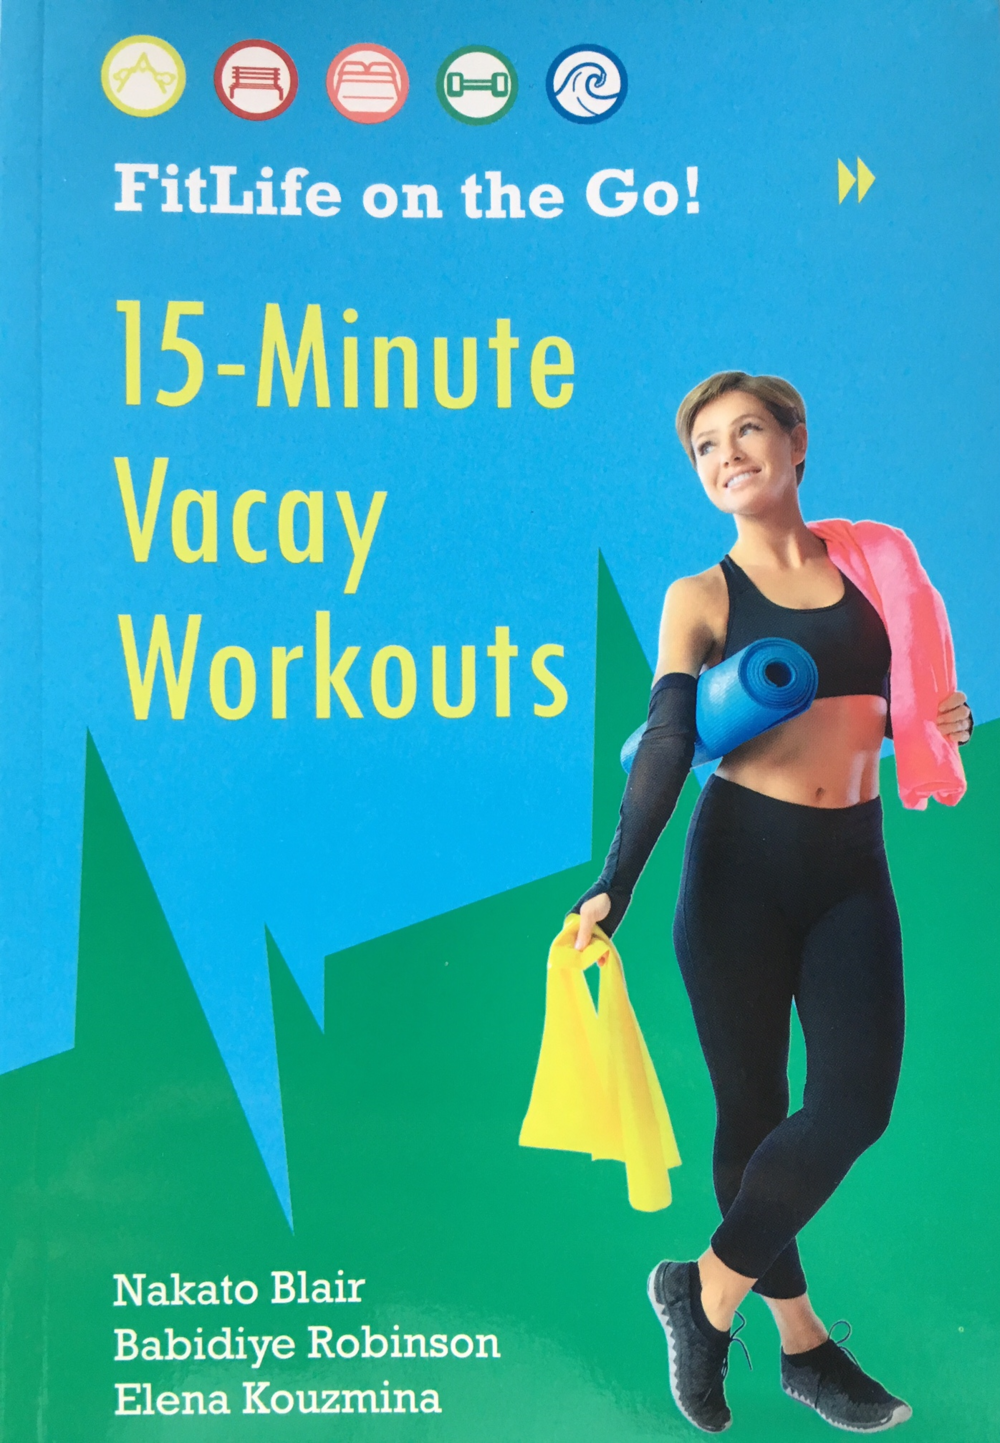 15-Minute Vacay Workouts.jpg